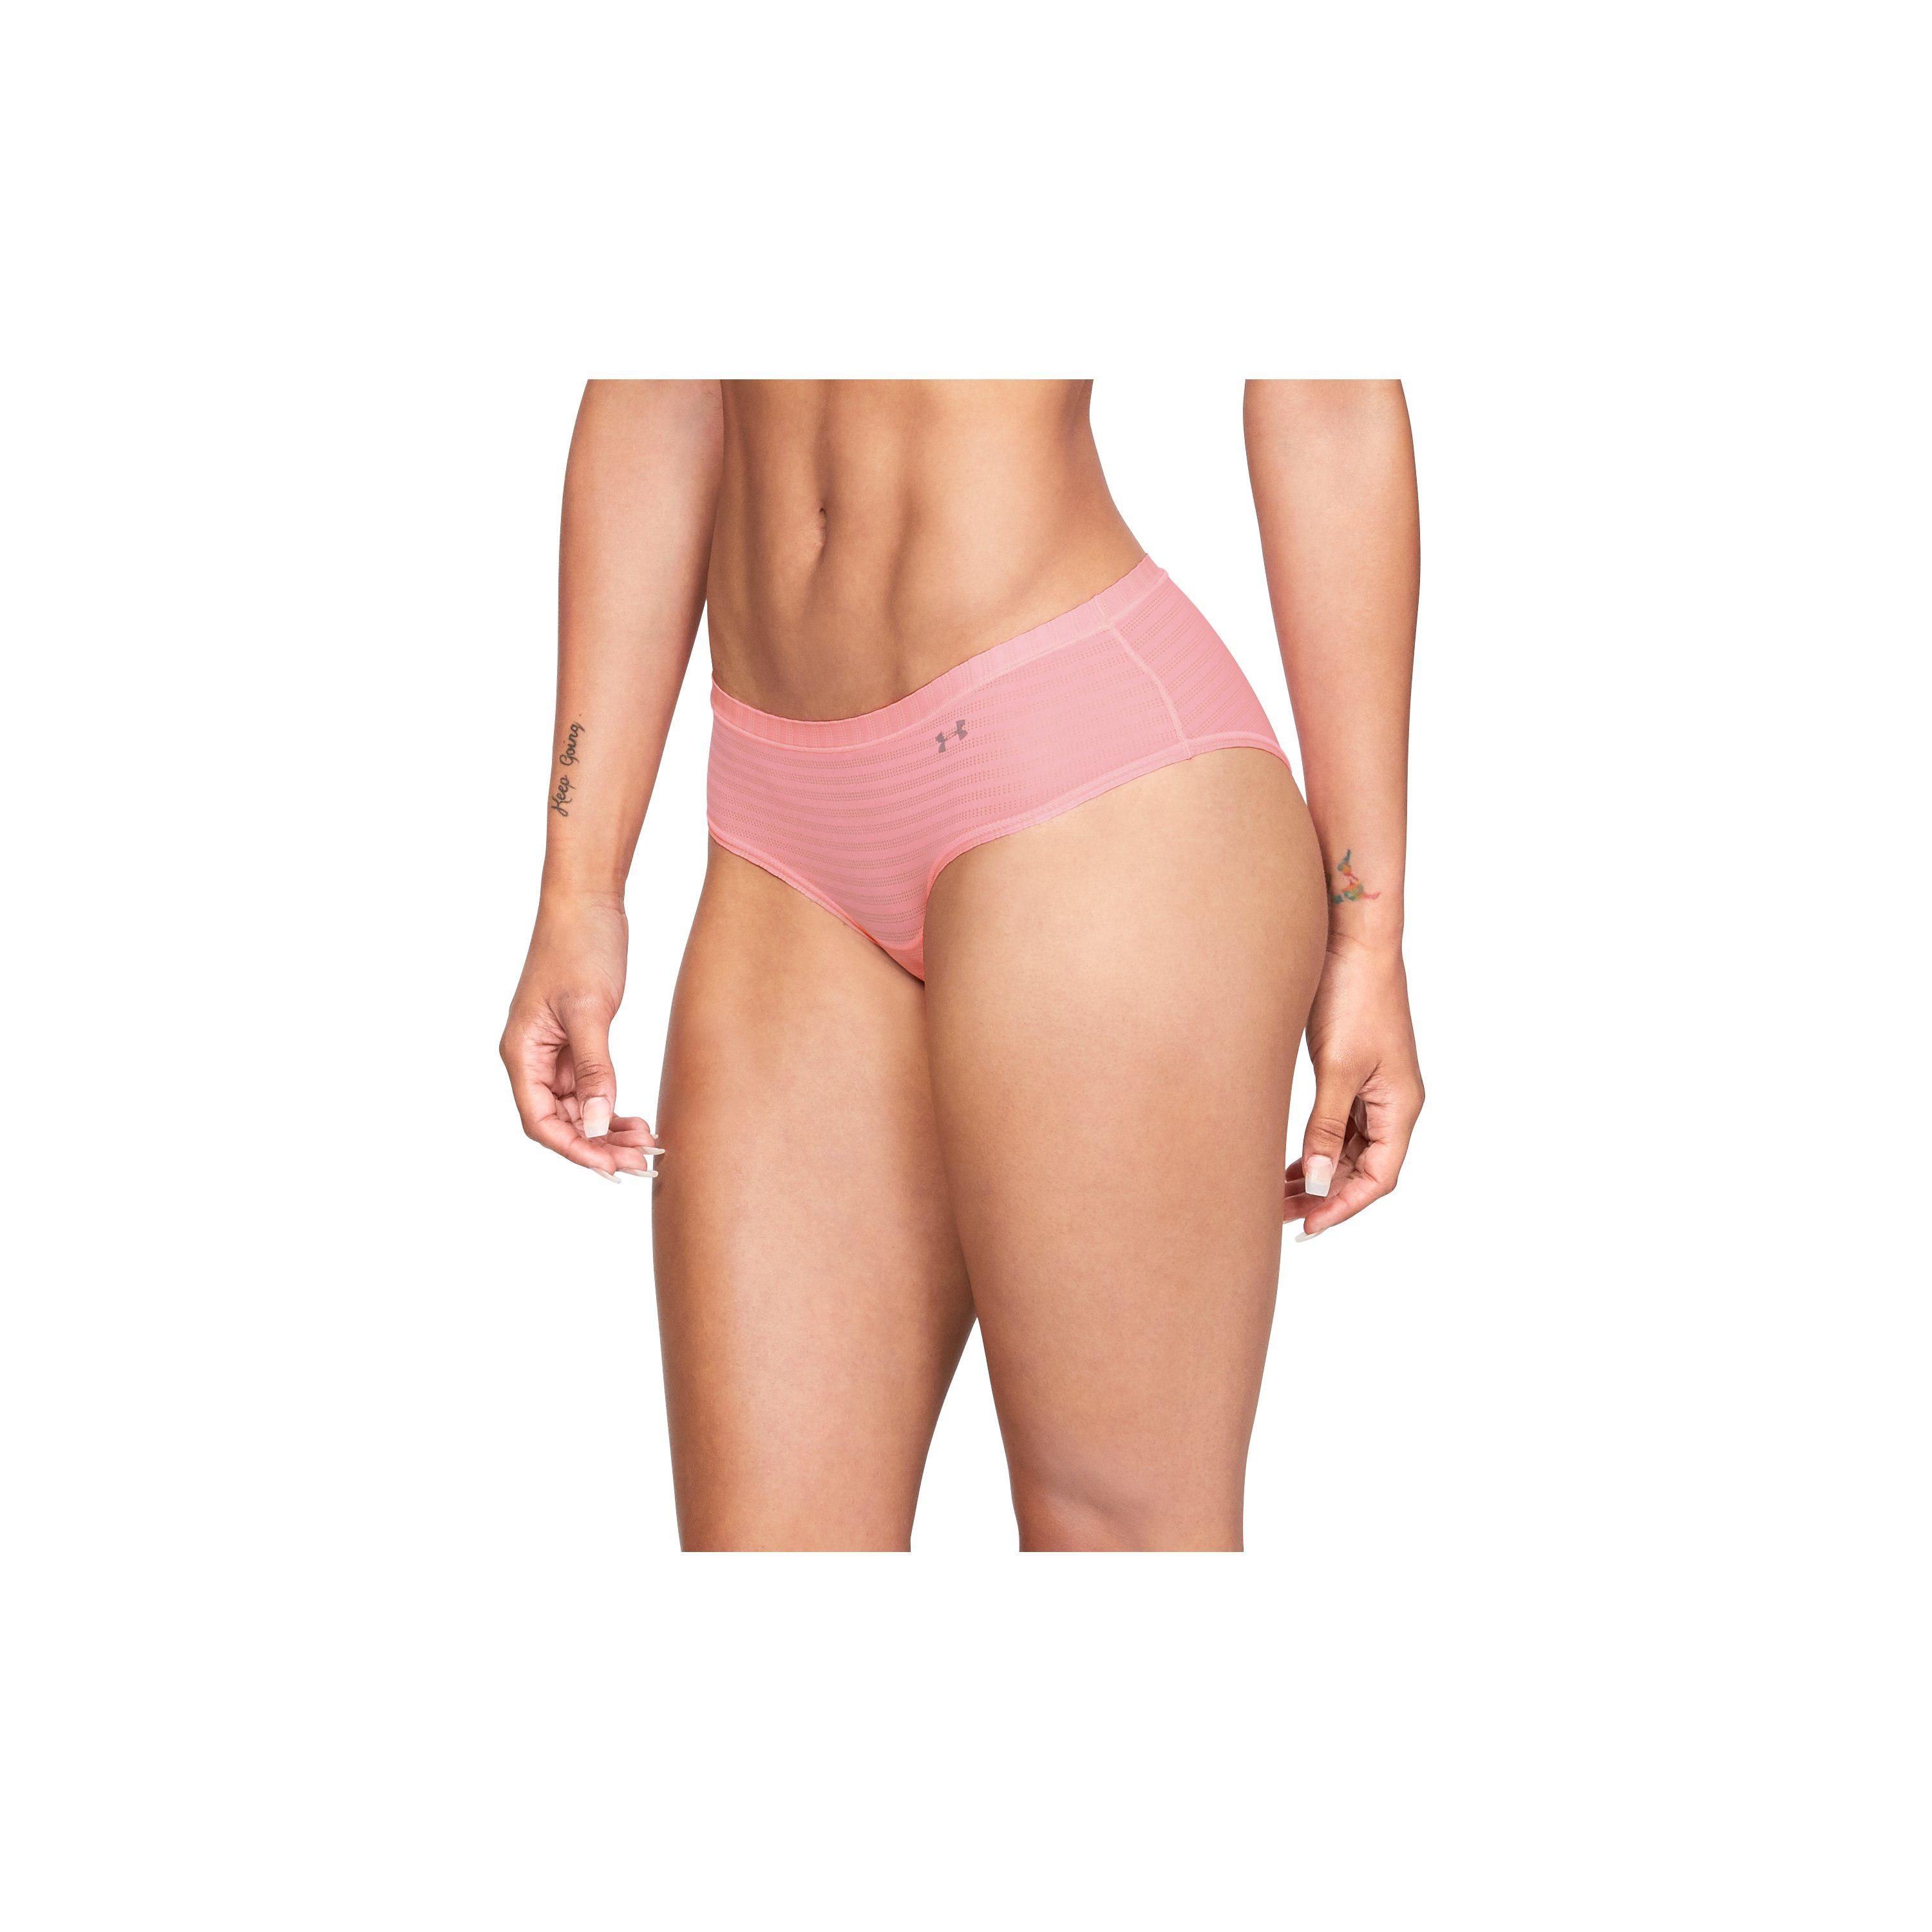 5ce38635c6 Under Armour Pink Women's Ua Pure Stretch - Sheer Novelty Hipster